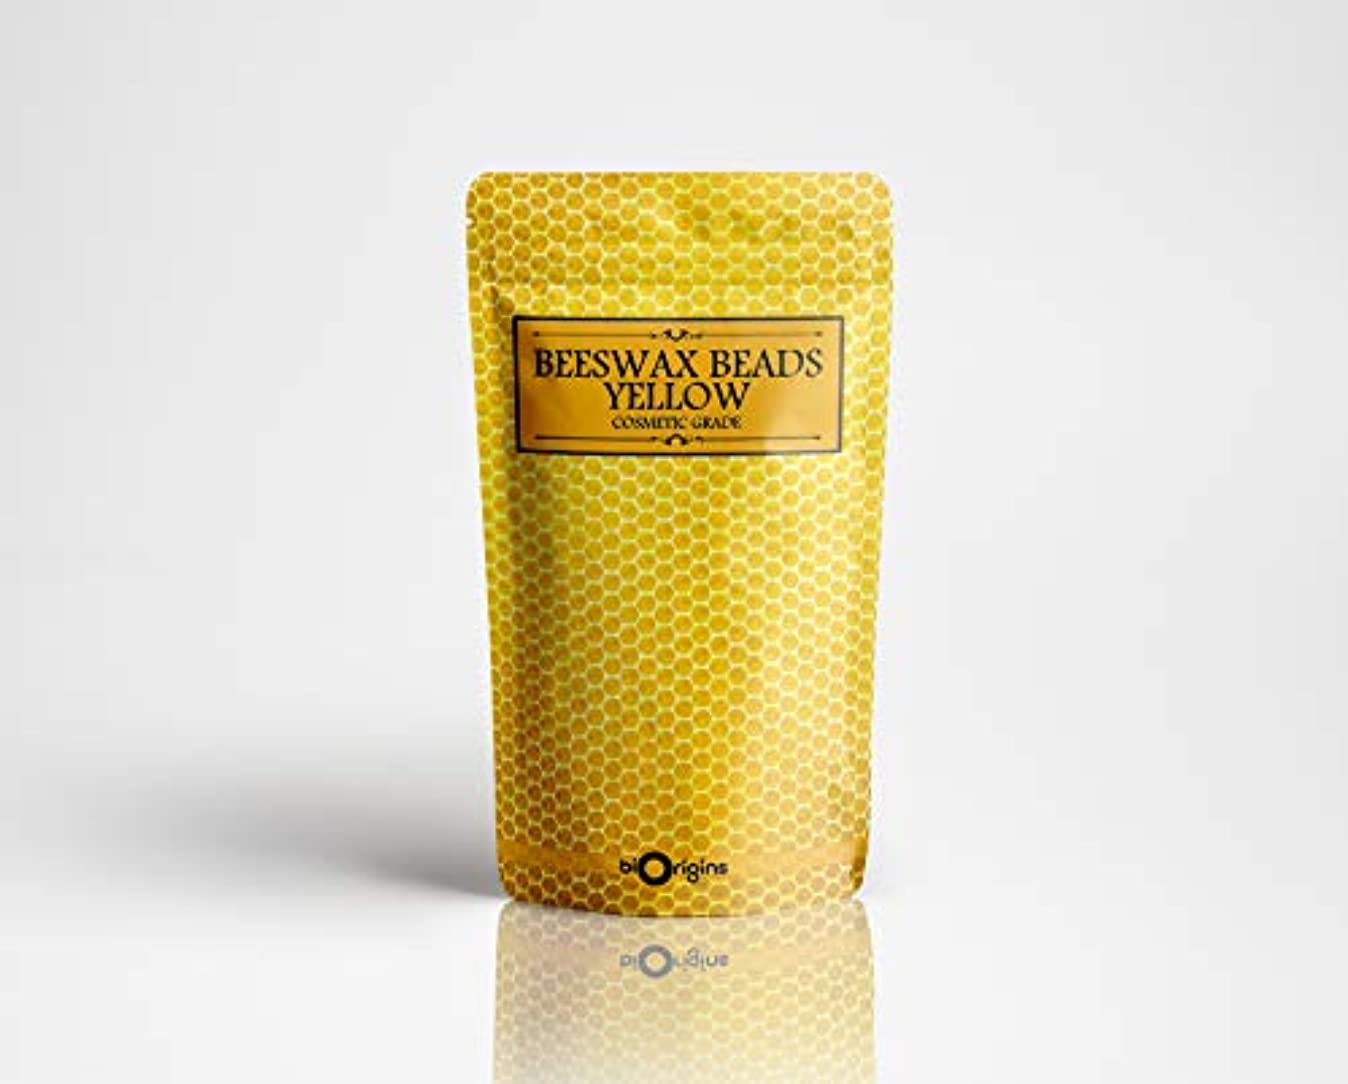 横にぼかすスマッシュBeeswax Beads Yellow - Cosmetic Grade - 100g